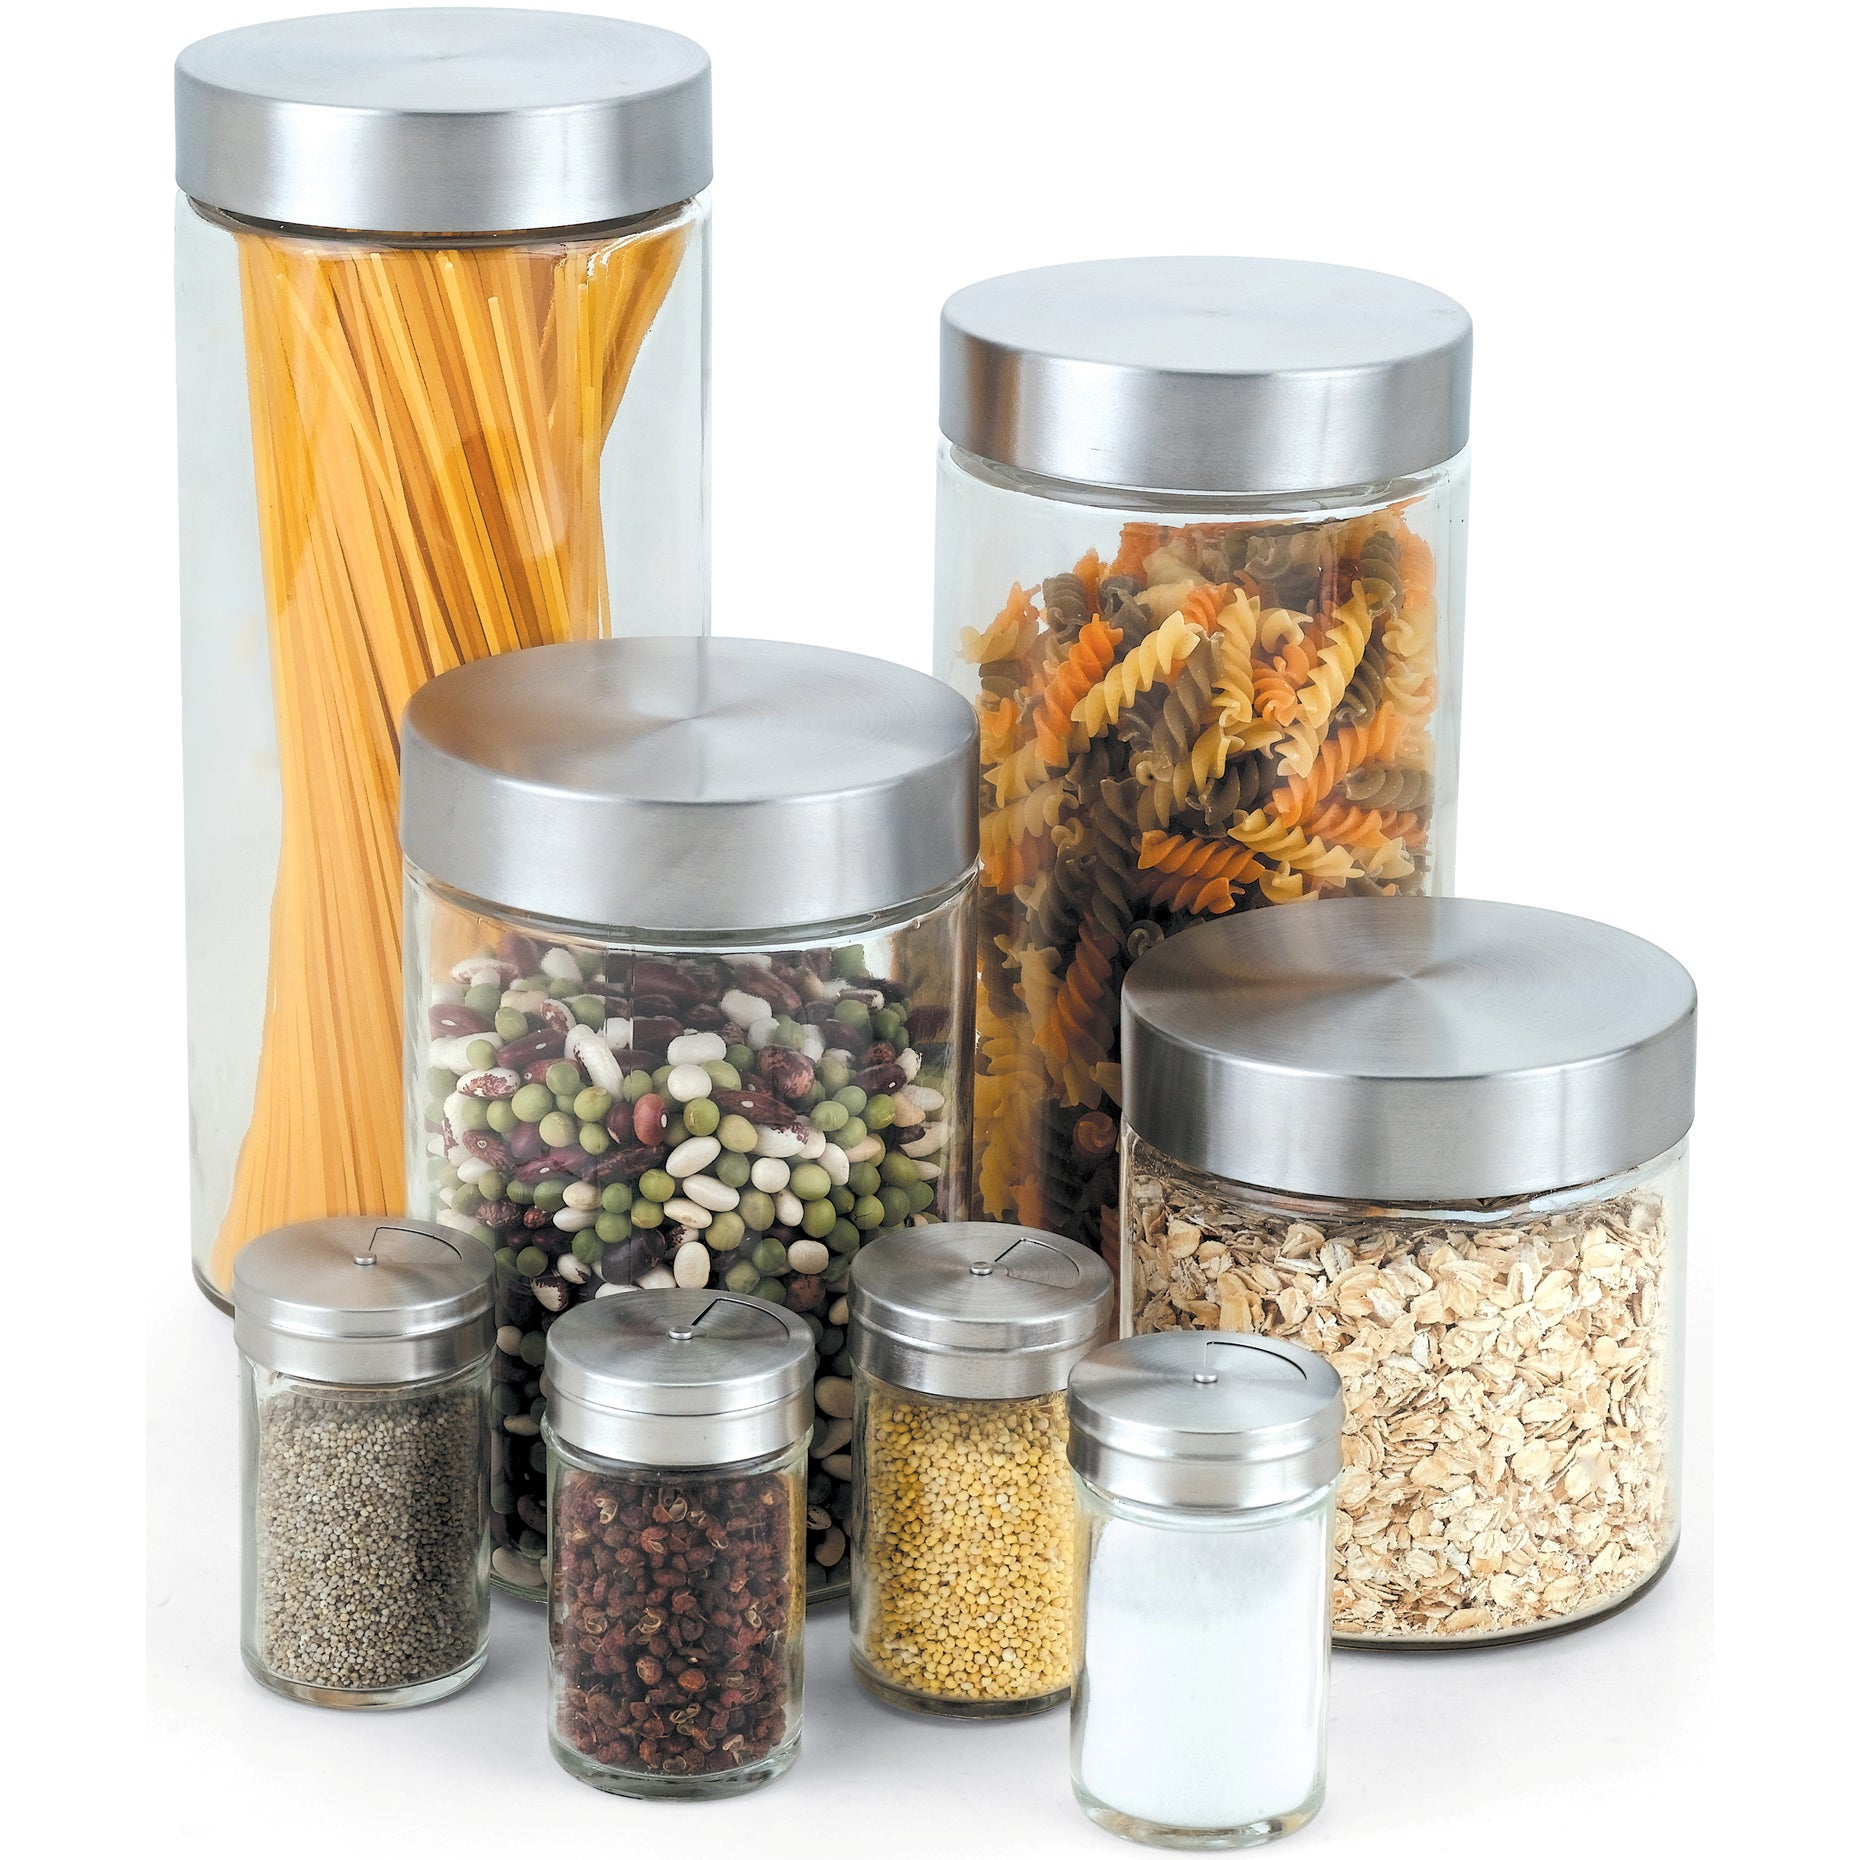 Shop Cook N Home 8 Piece Glass Canister And Spice Jar Set With Lids    Clear/Silver   On Sale   Free Shipping On Orders Over $45   Overstock.com    7310354